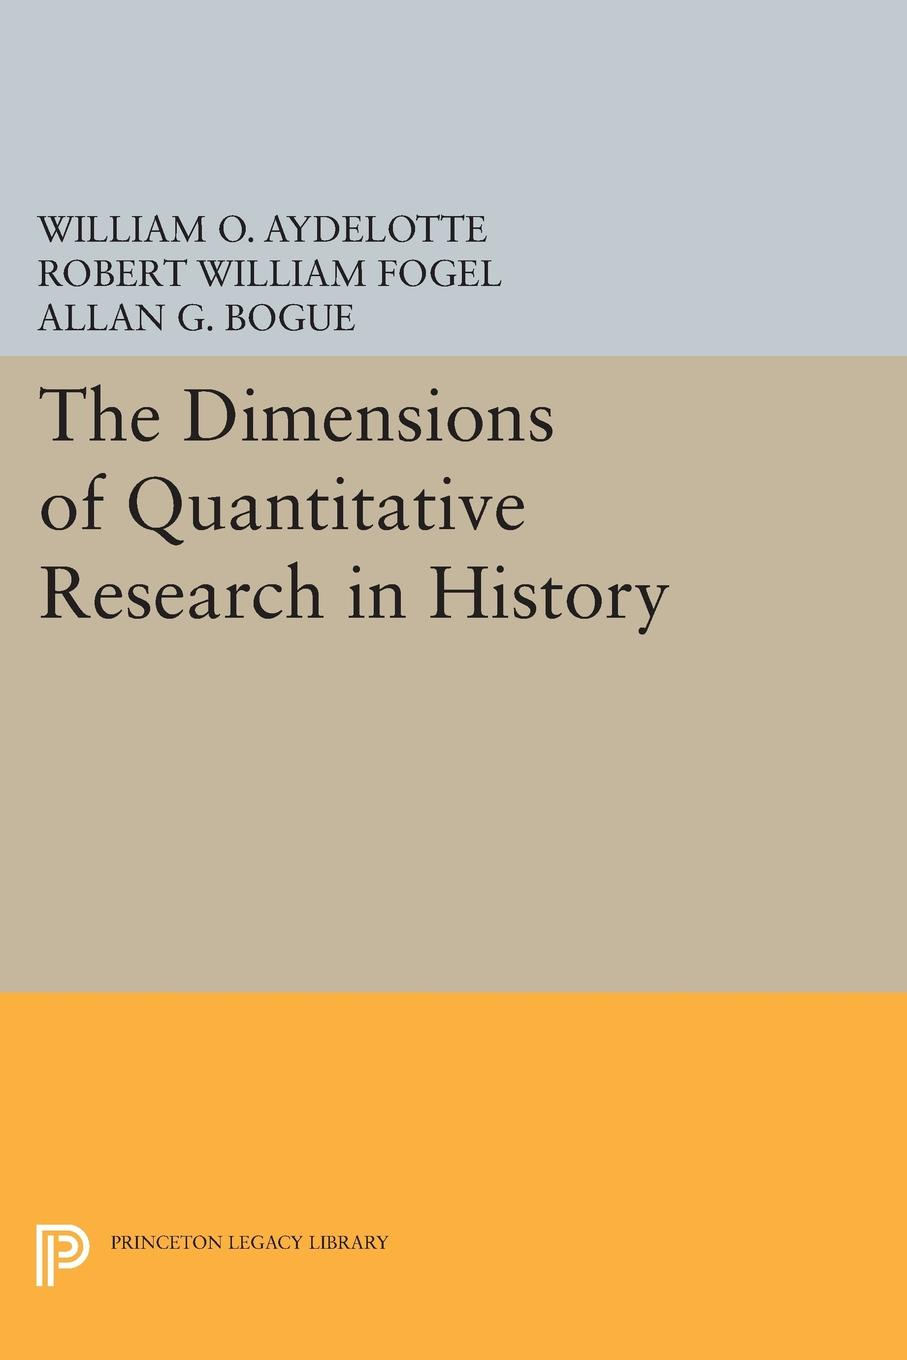 William O. Aydelotte, Robert William Fogel, Allan G. Bogue The Dimensions of Quantitative Research in History ajurmotts g zannotti william n joyce fishing derby poems in princeton tufts